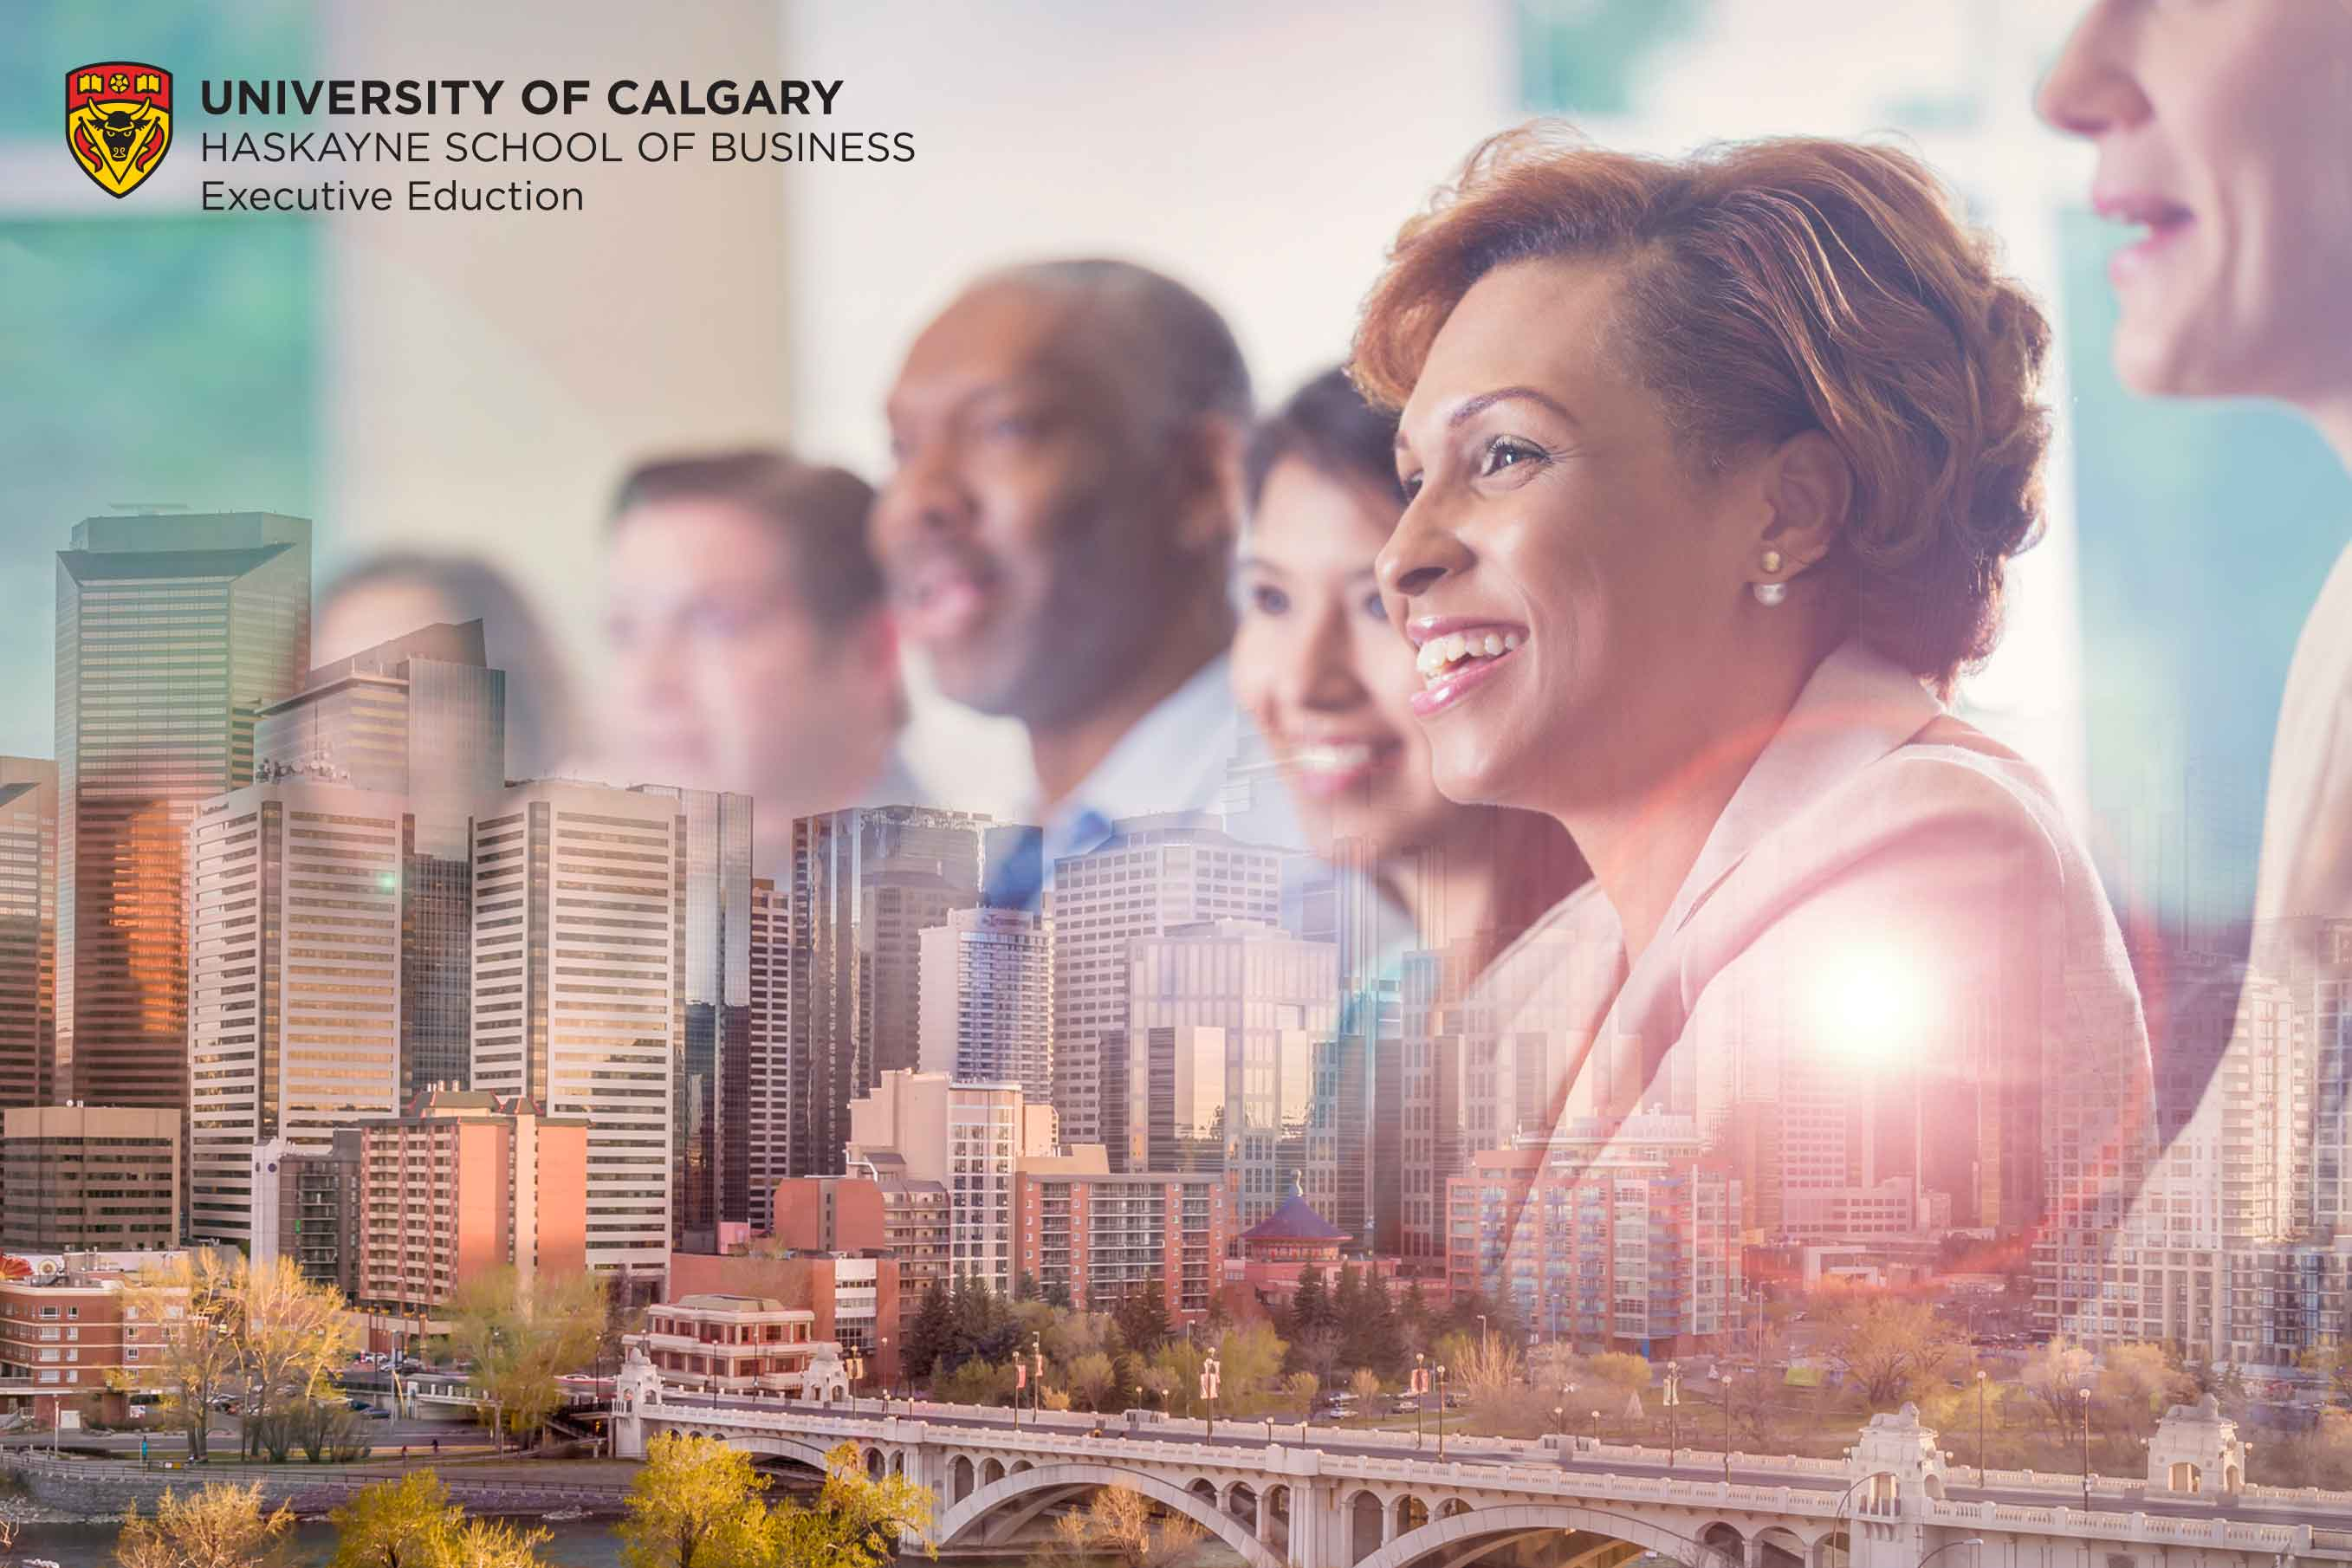 Haskayne-School-of-Business-Executive-Education-Hero-Image-Lensflare-2.jpg